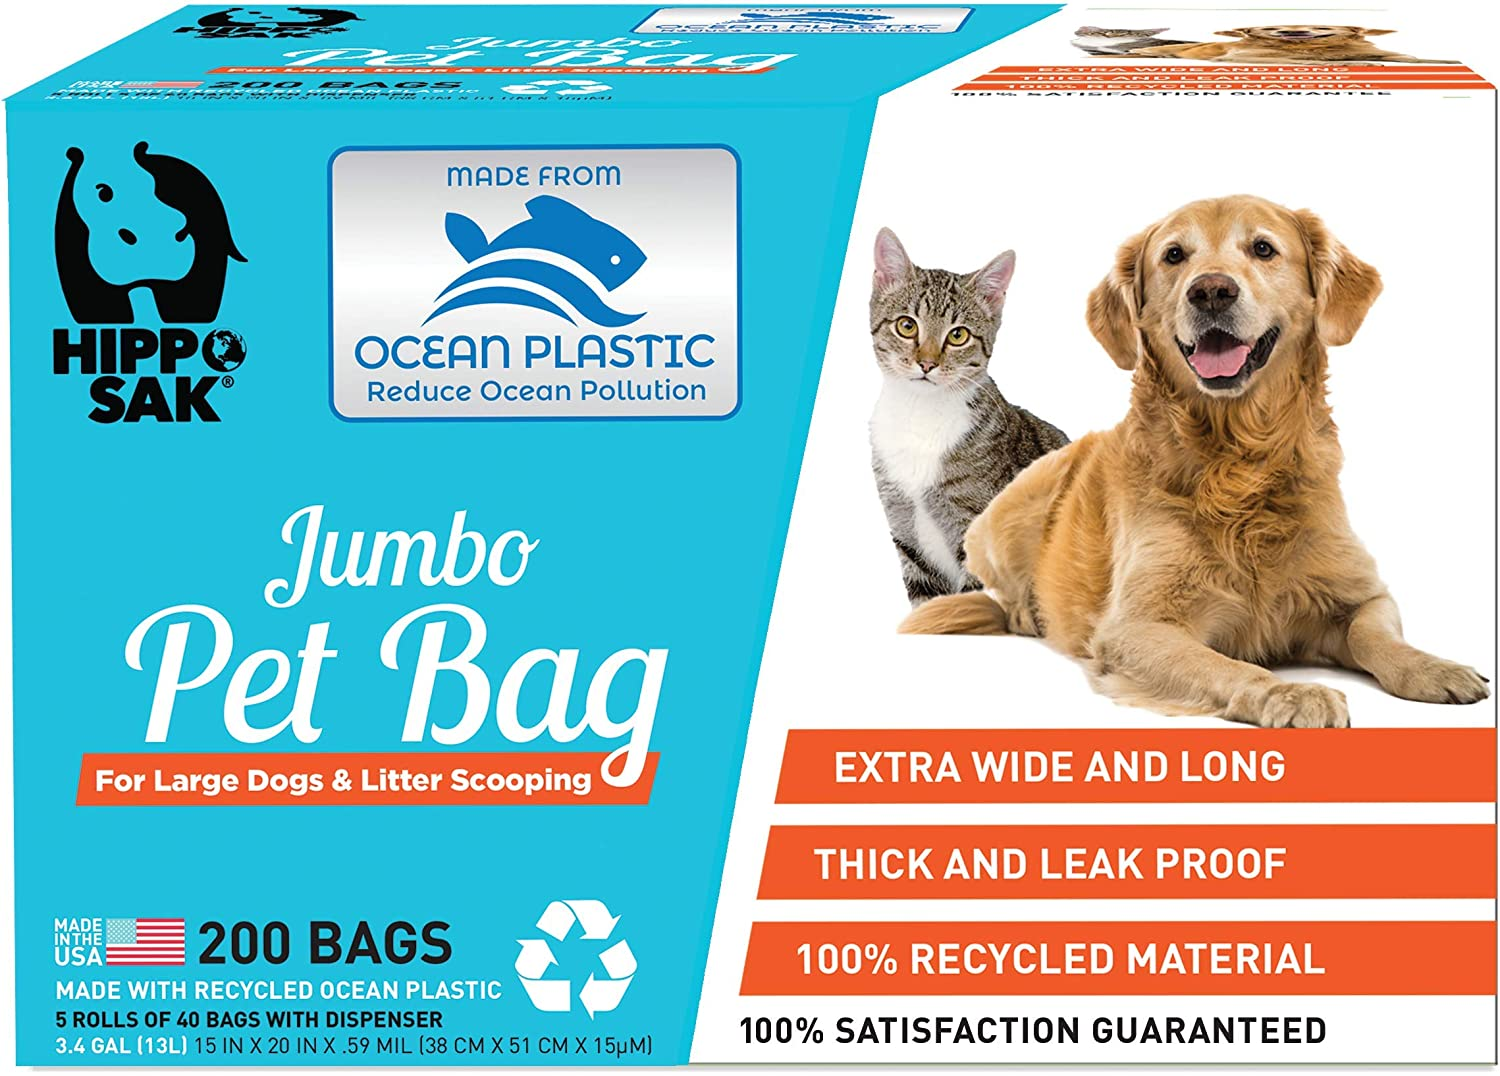 Hippo Sak Extra Large Pet Poop Bags with Dispenser, Made with Ocean Plastic, 200 Count